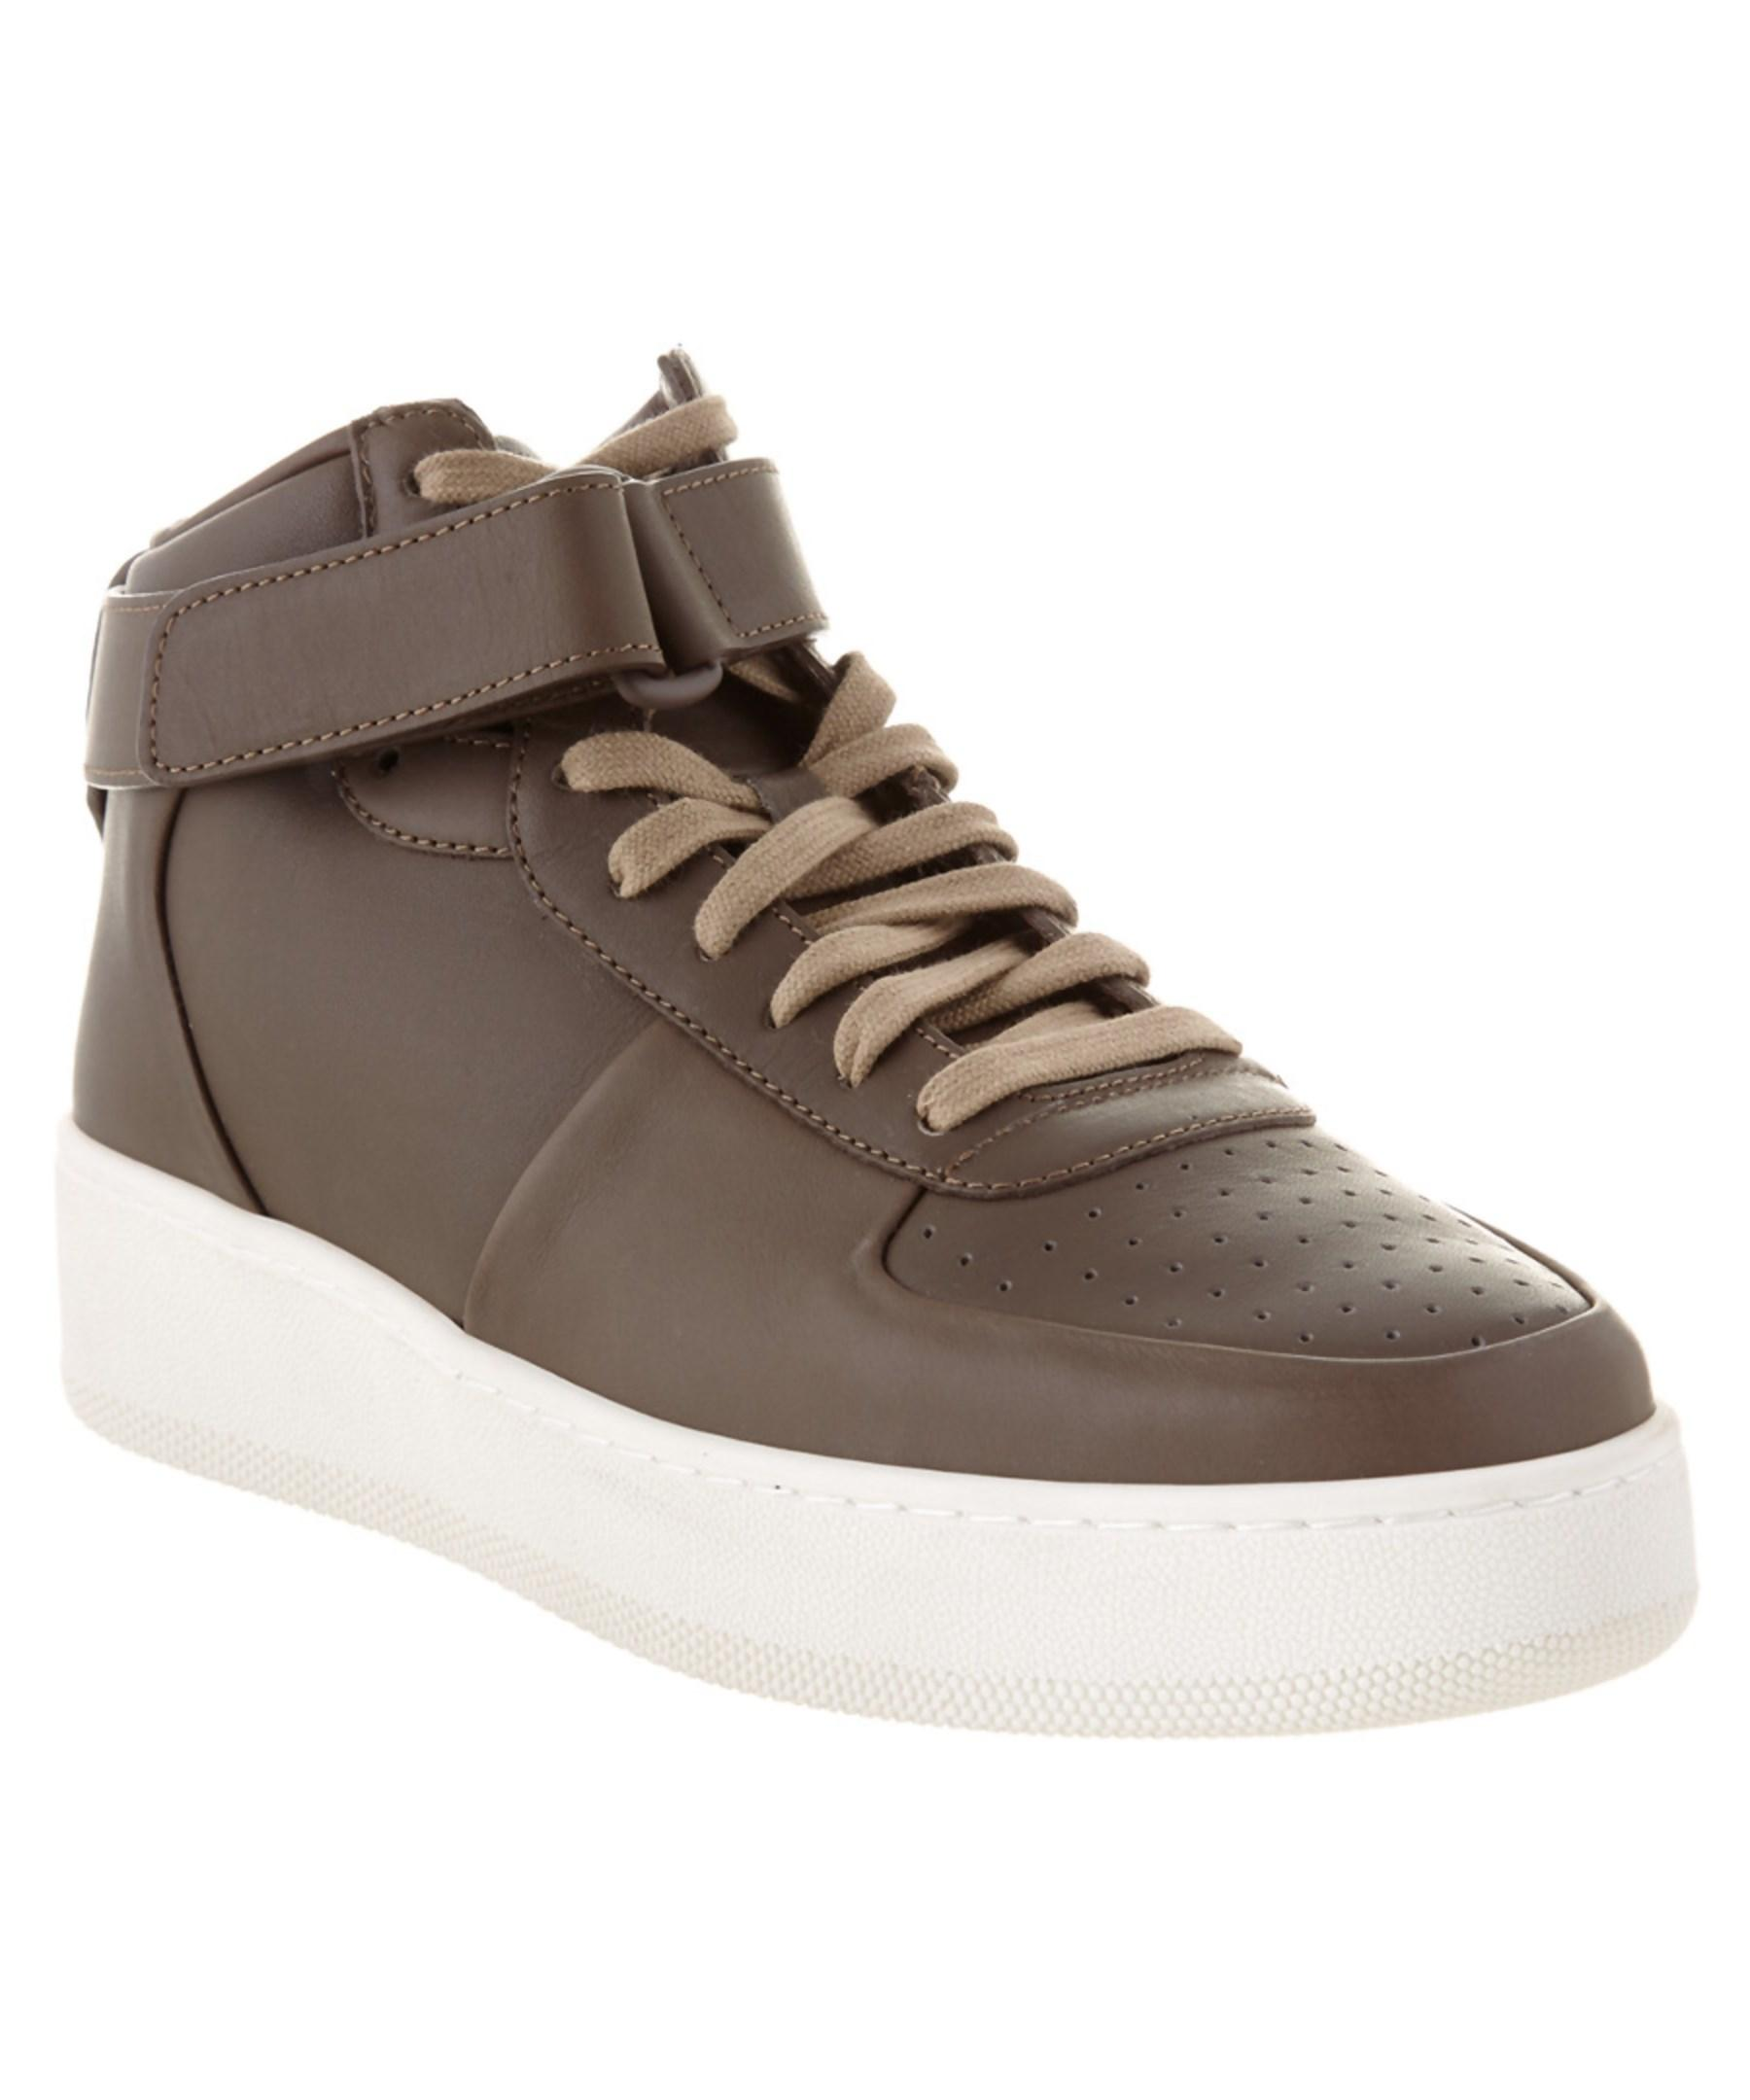 c 233 line leather high top sneaker in brown for lyst